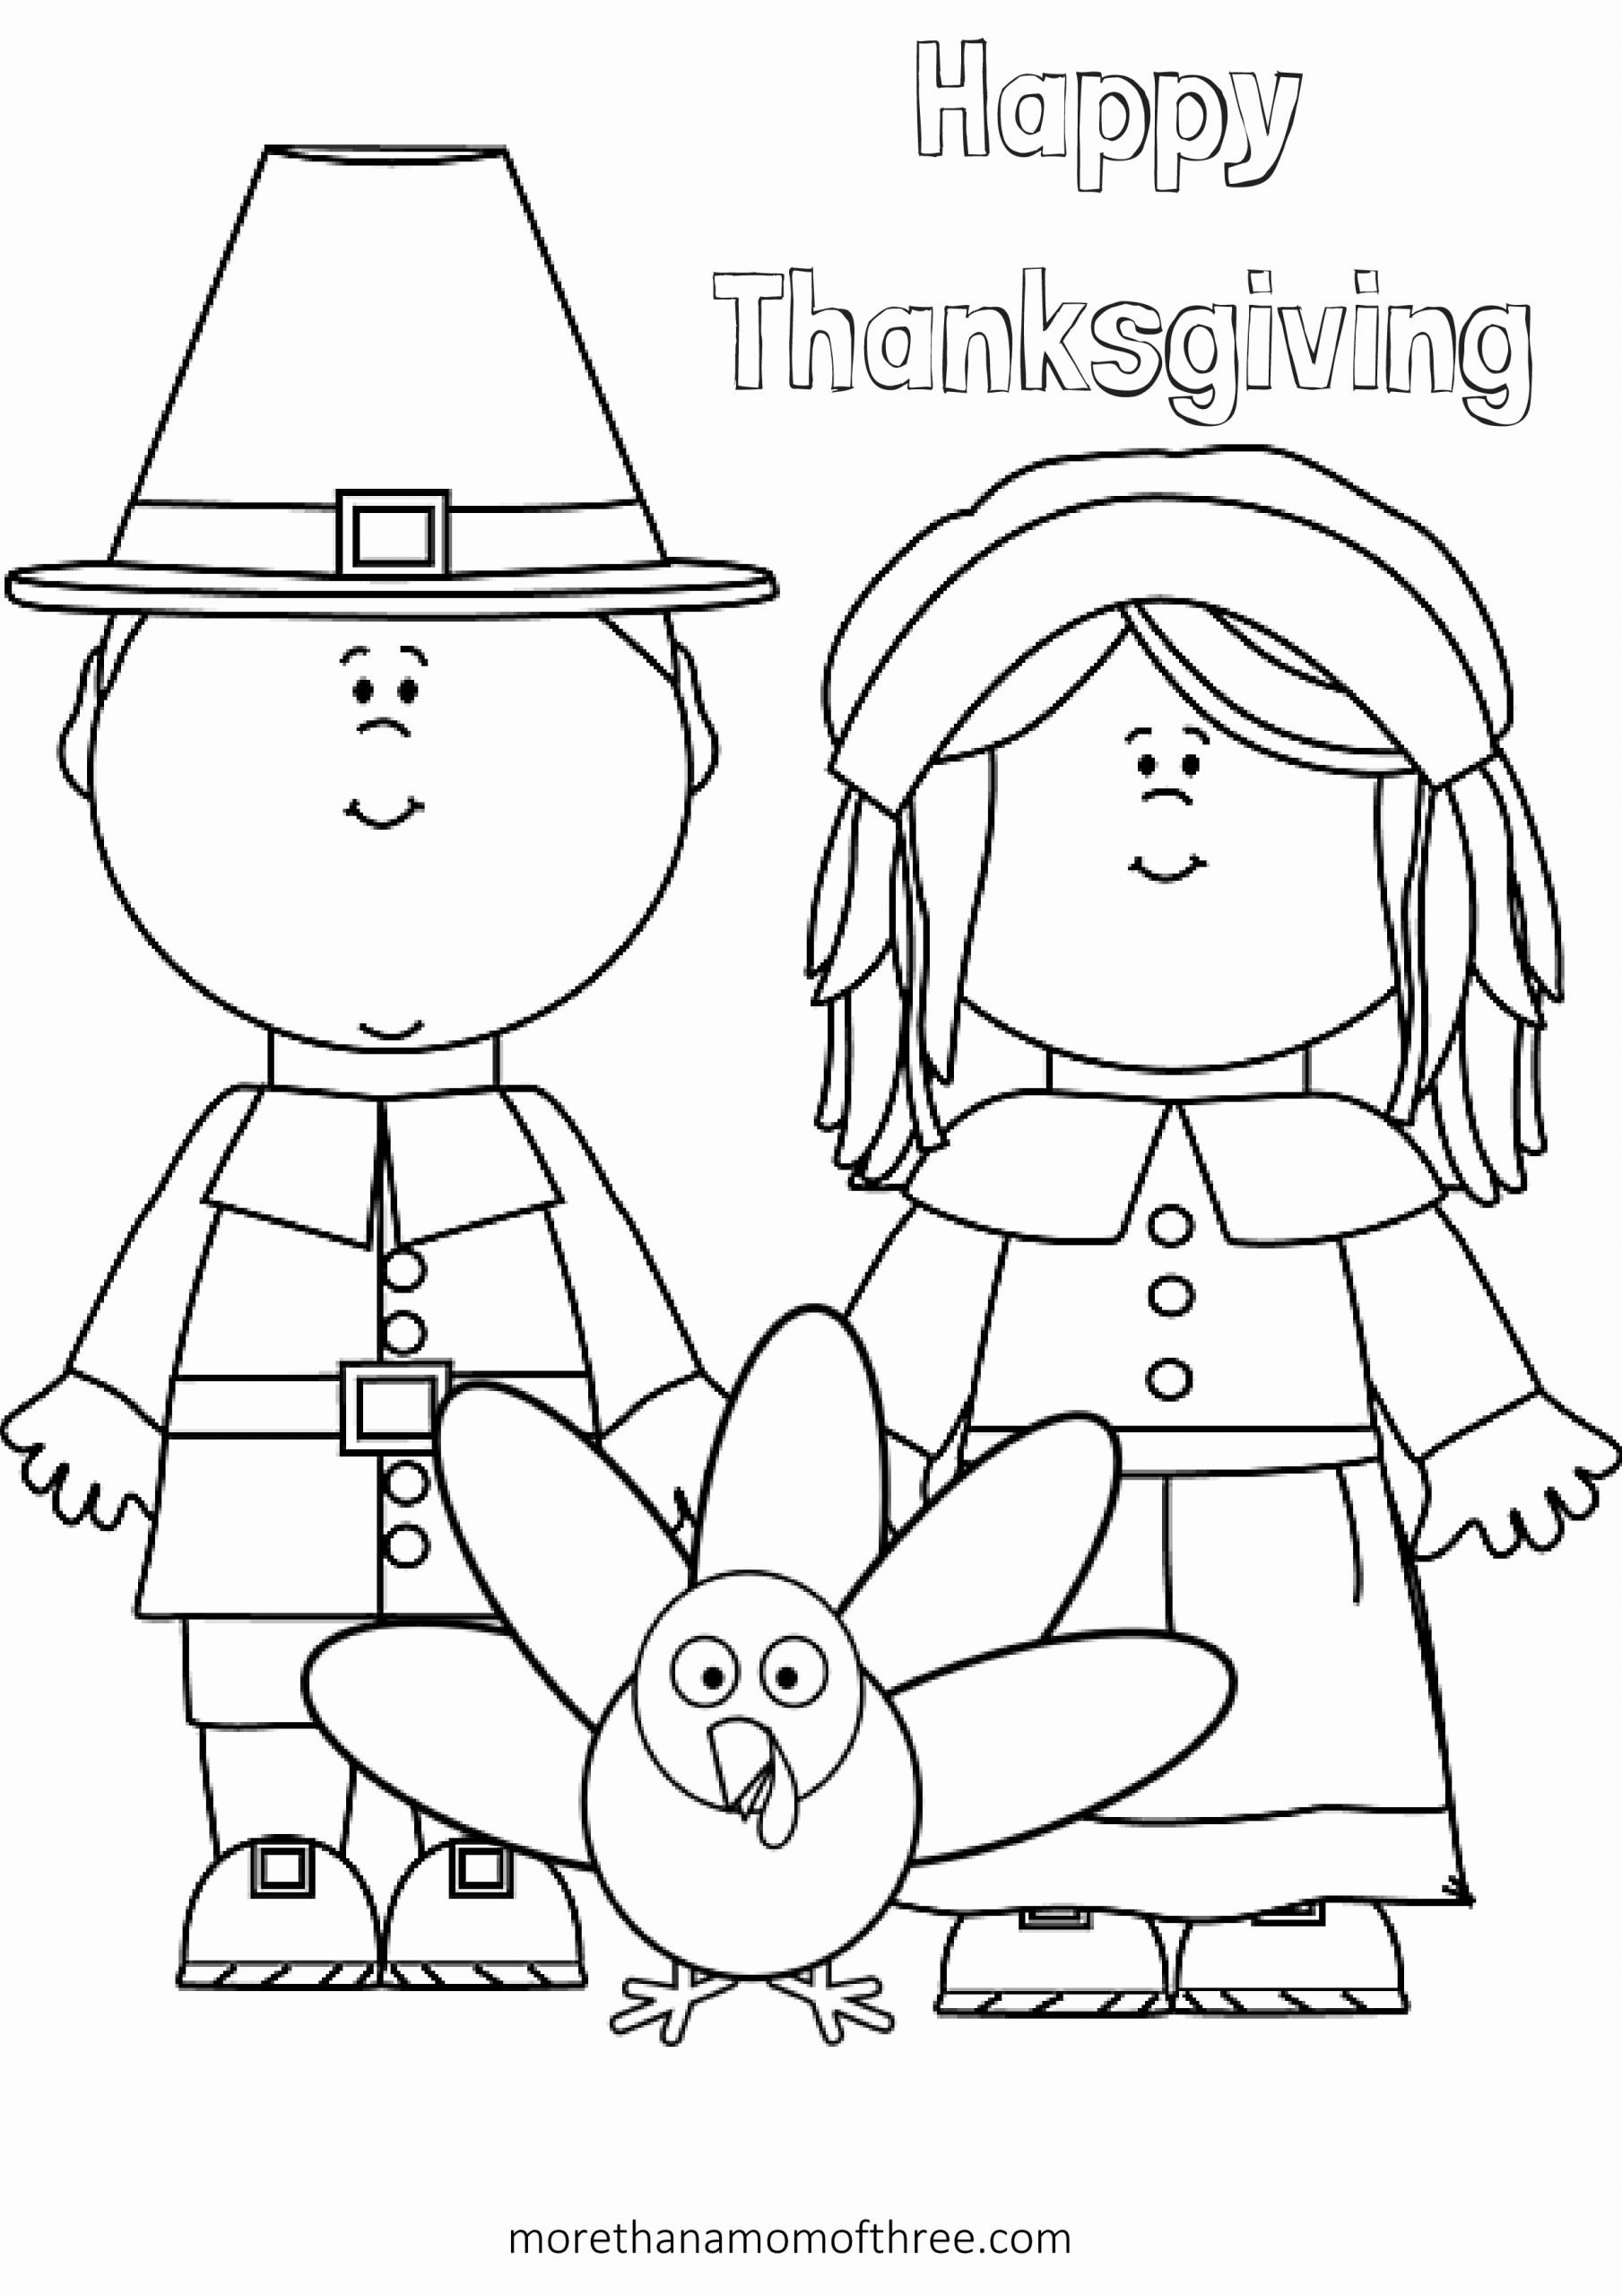 Thanksgiving Coloring Worksheets for Preschoolers New Happy Thanksgiving Jpeg Image 2479 — 3509 Pixels